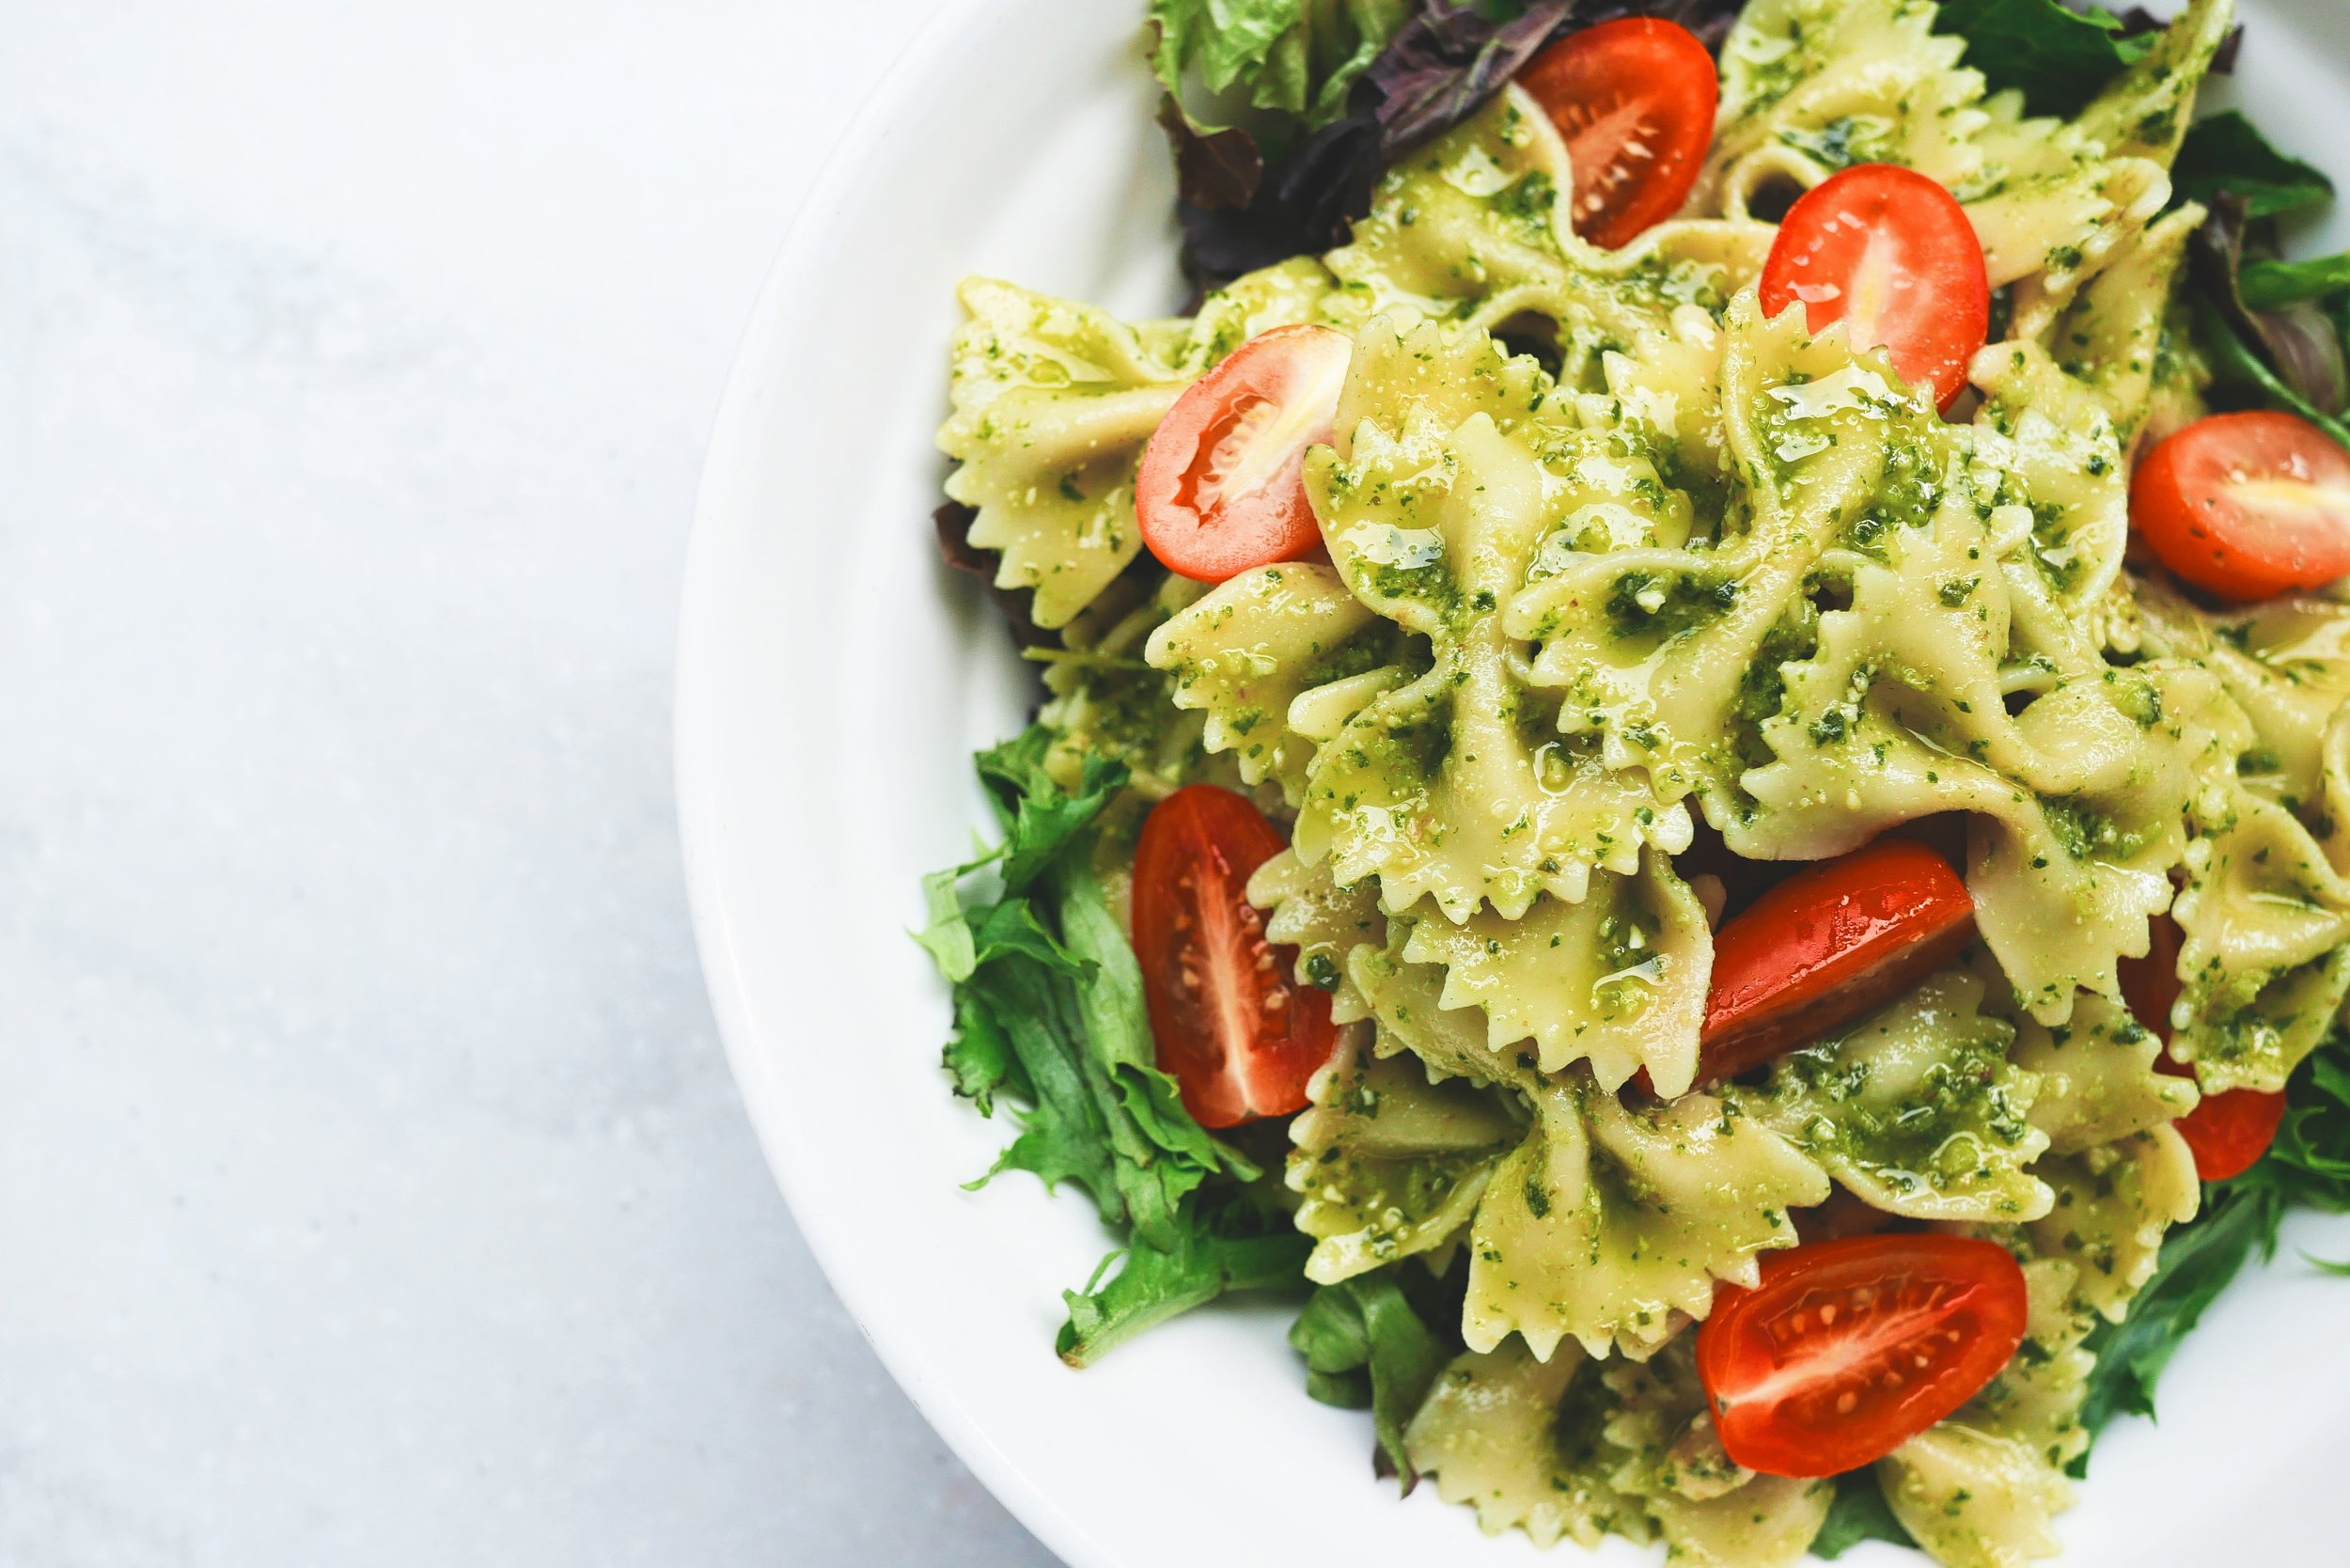 Gluten free bowtie pasta with cherry tomatoes and pesto on a bed of fresh arugula